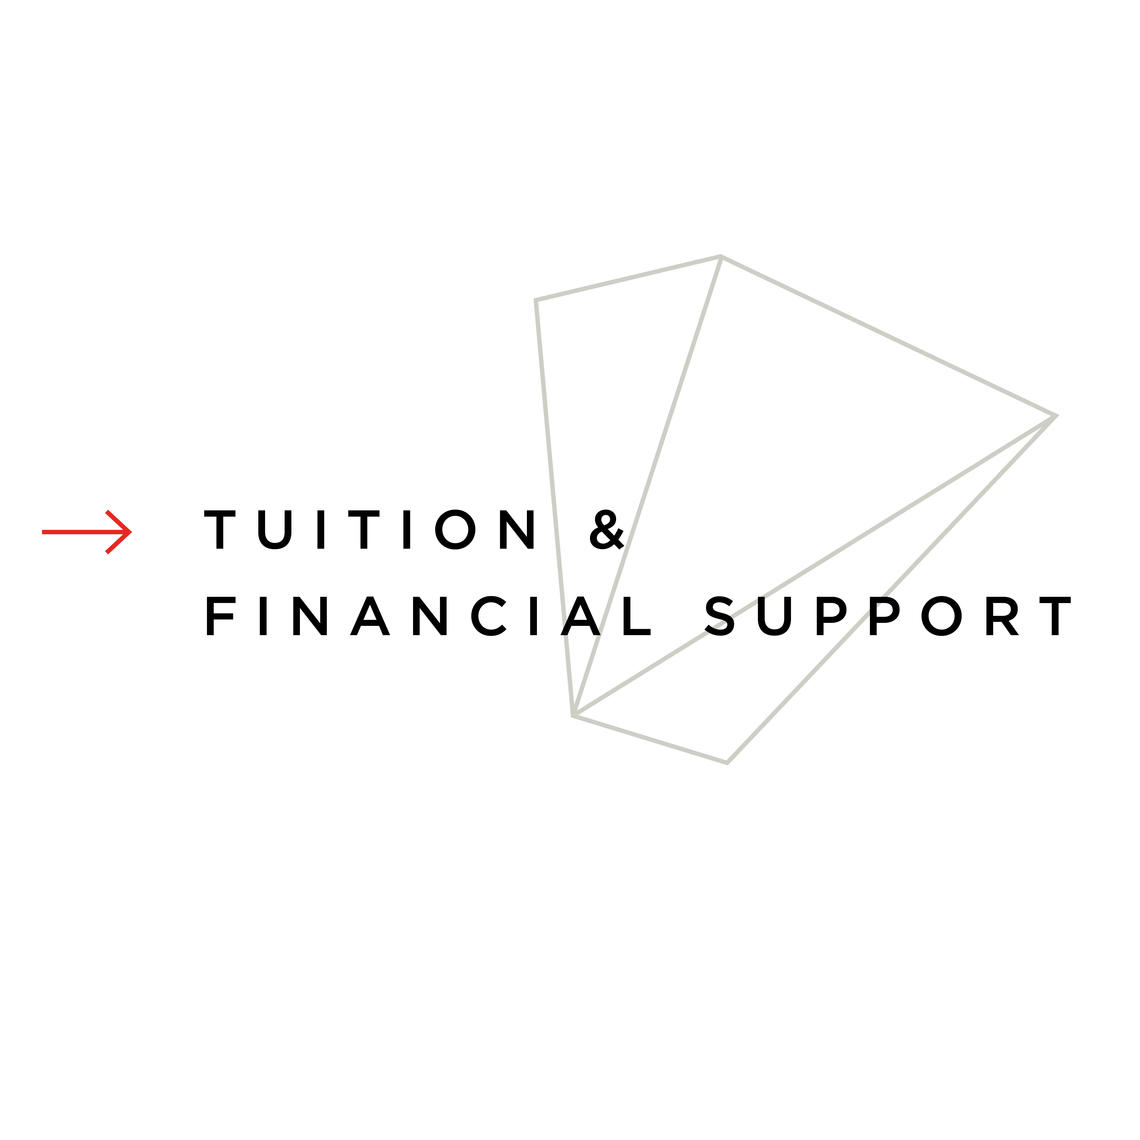 Tuition and Financial Support